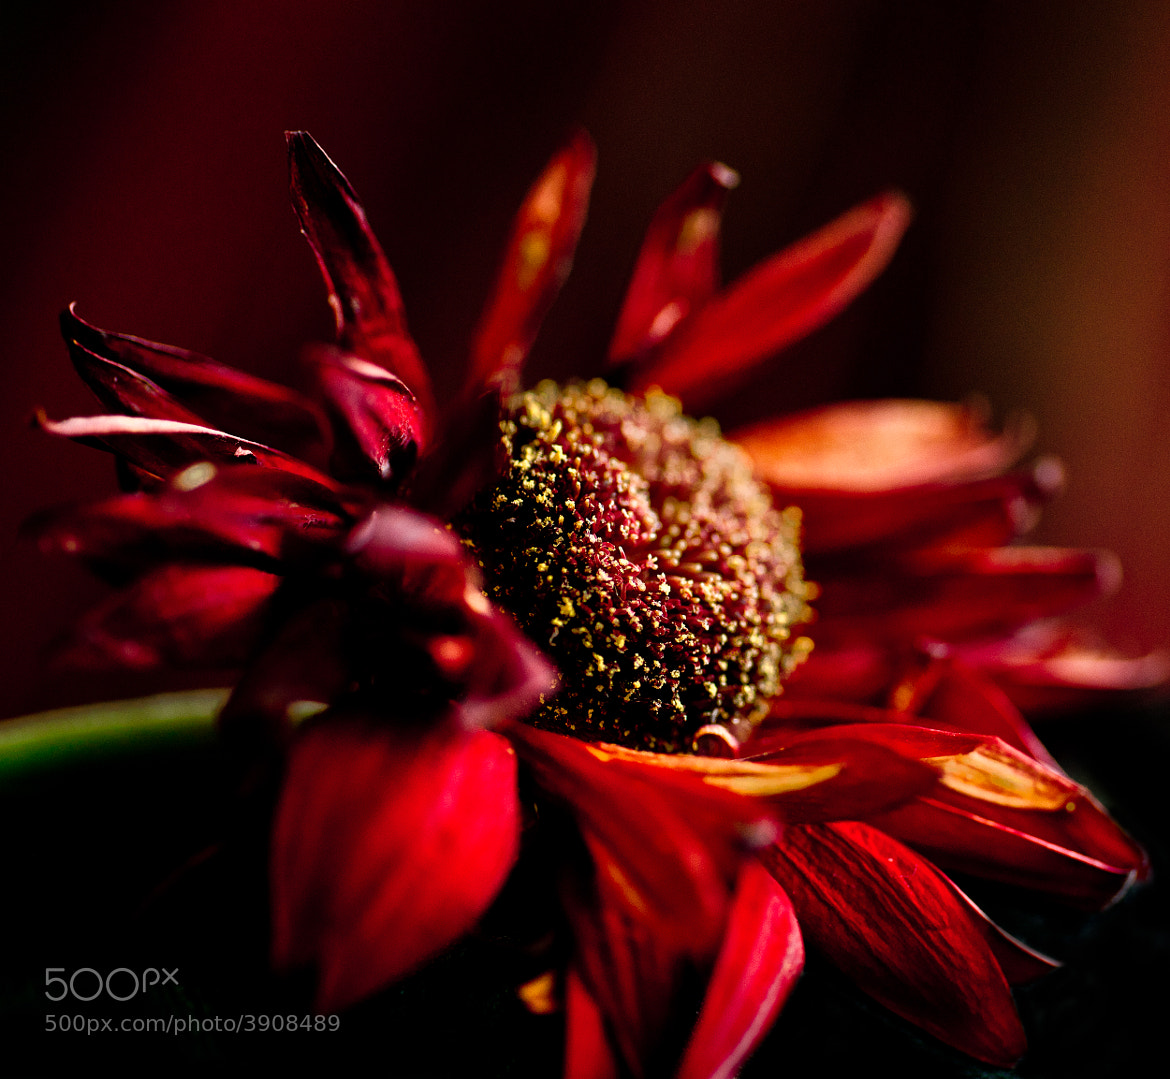 Photograph Dying Wish by Dean Mullin on 500px